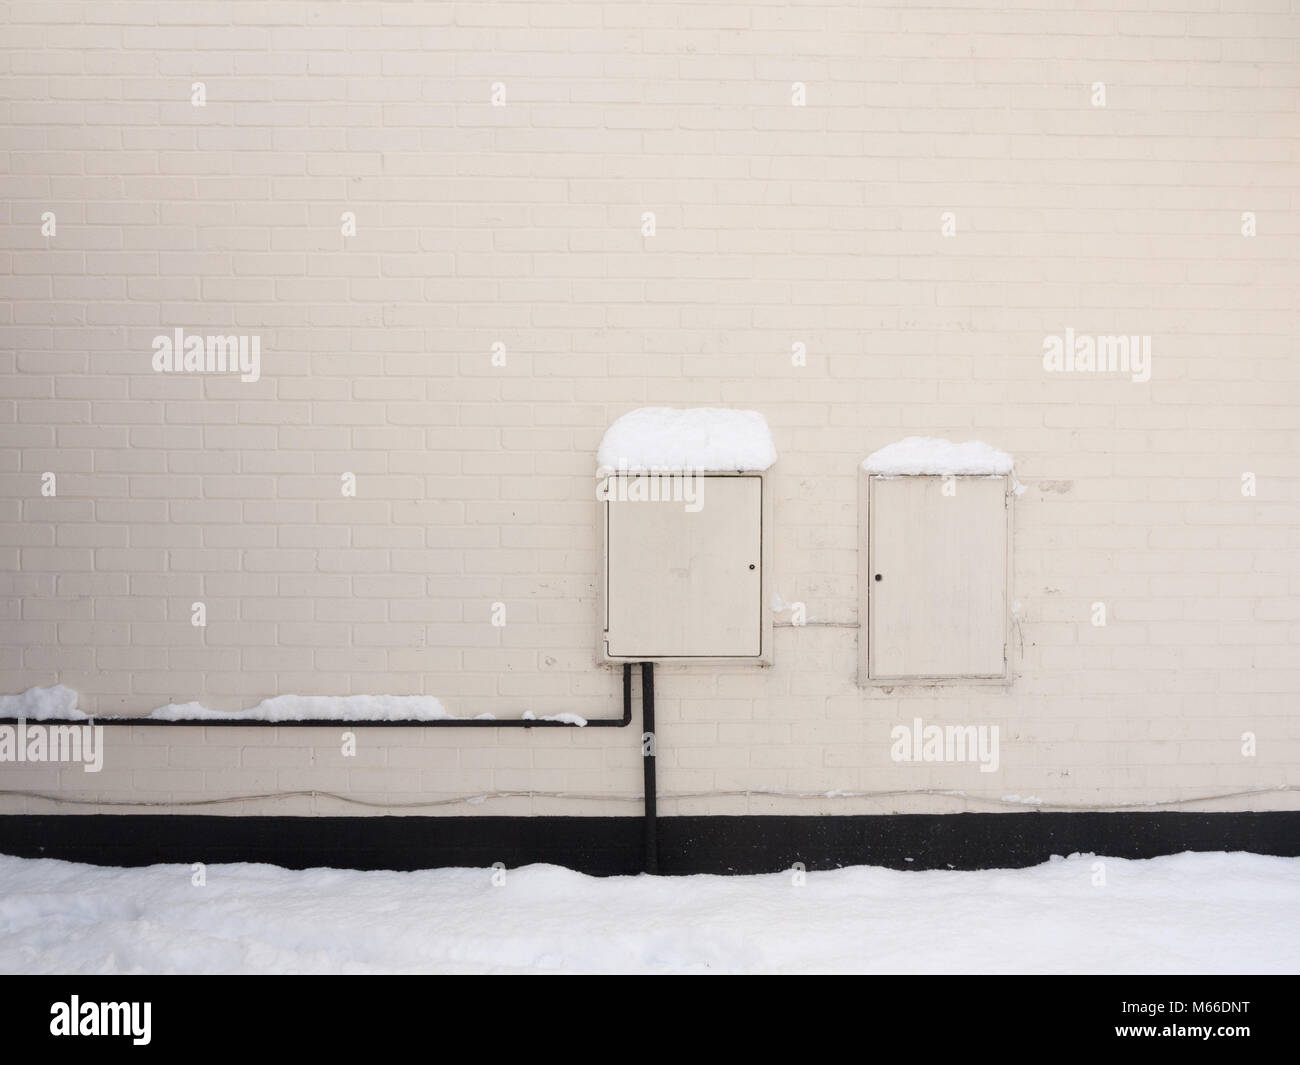 fuse box house stock photos fuse box house stock images alamy rh alamy com  fuse box outside house uk